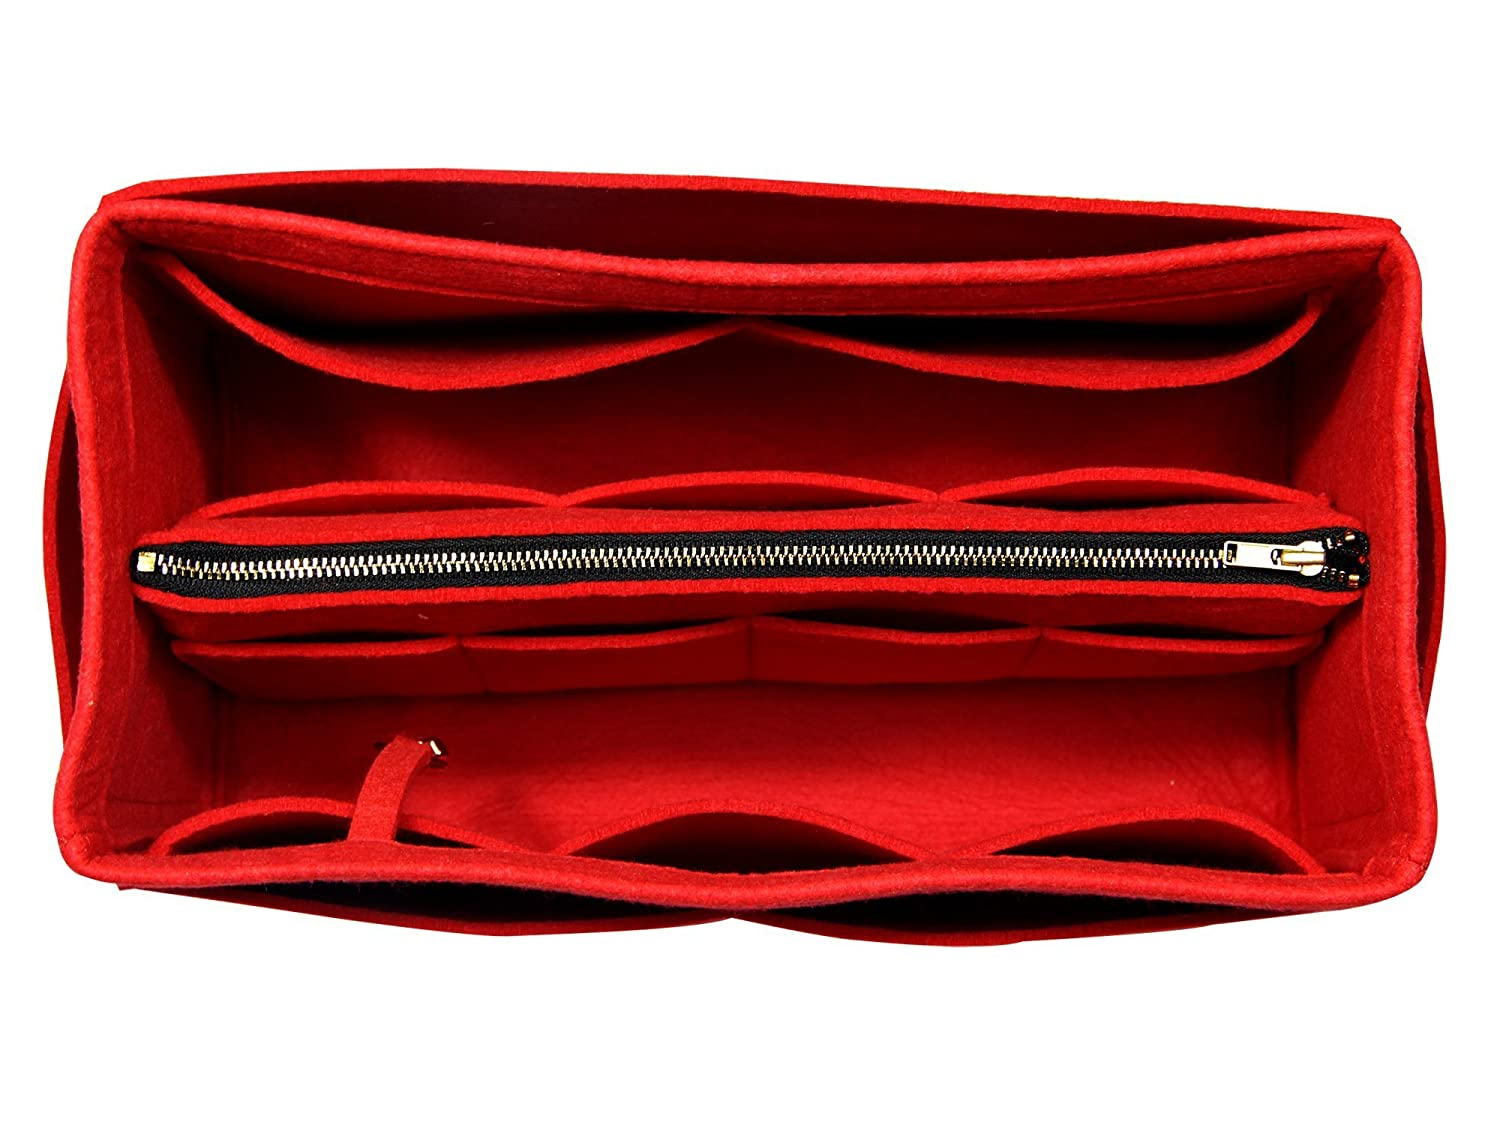 [Fits Neverfull MM/Speedy 30, Red] Purse Insert (3mm Felt, Detachable Pouch w/Metal Zip), Felt Tote Bag Organizer